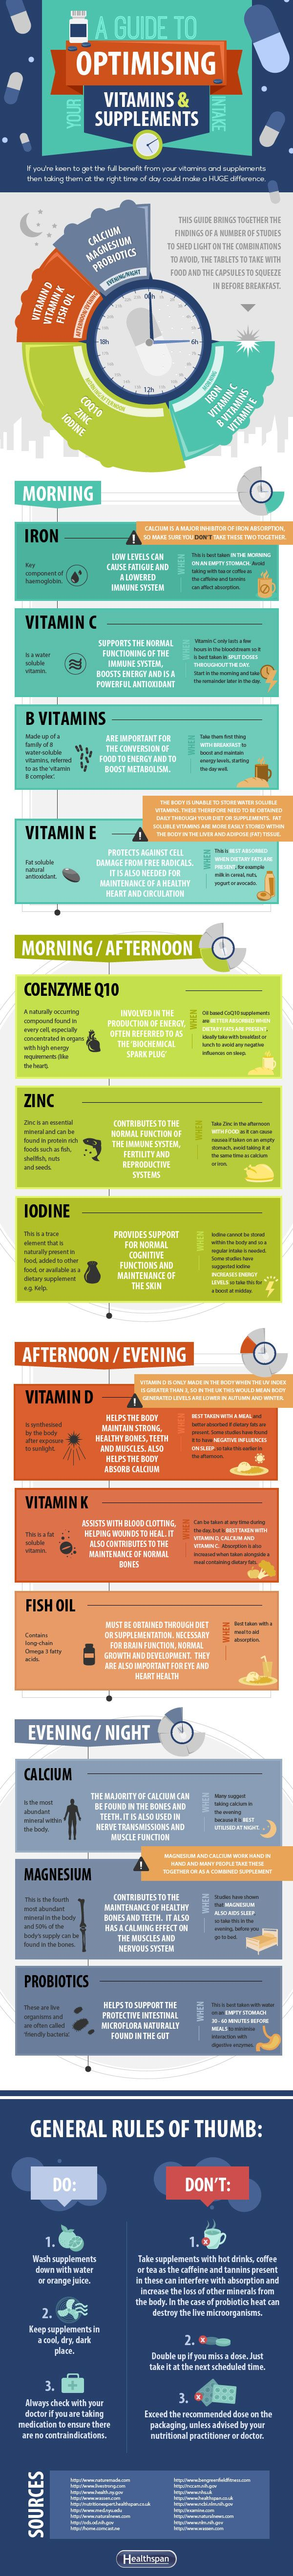 Optimizing Vitamins and Supplements Guide